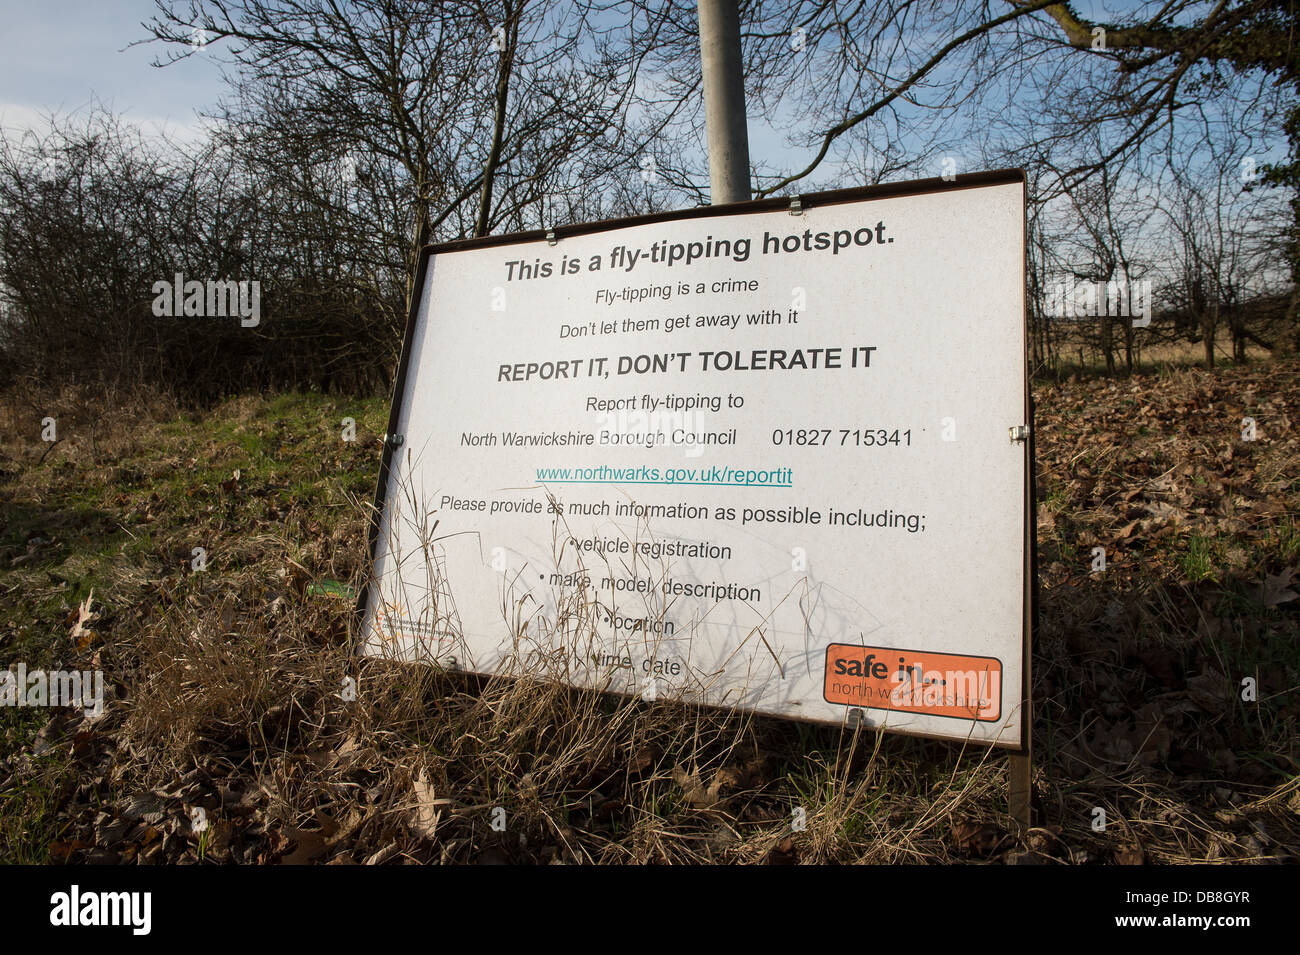 Anti fly-tipping sign in Warwickshire, England. - Stock Image